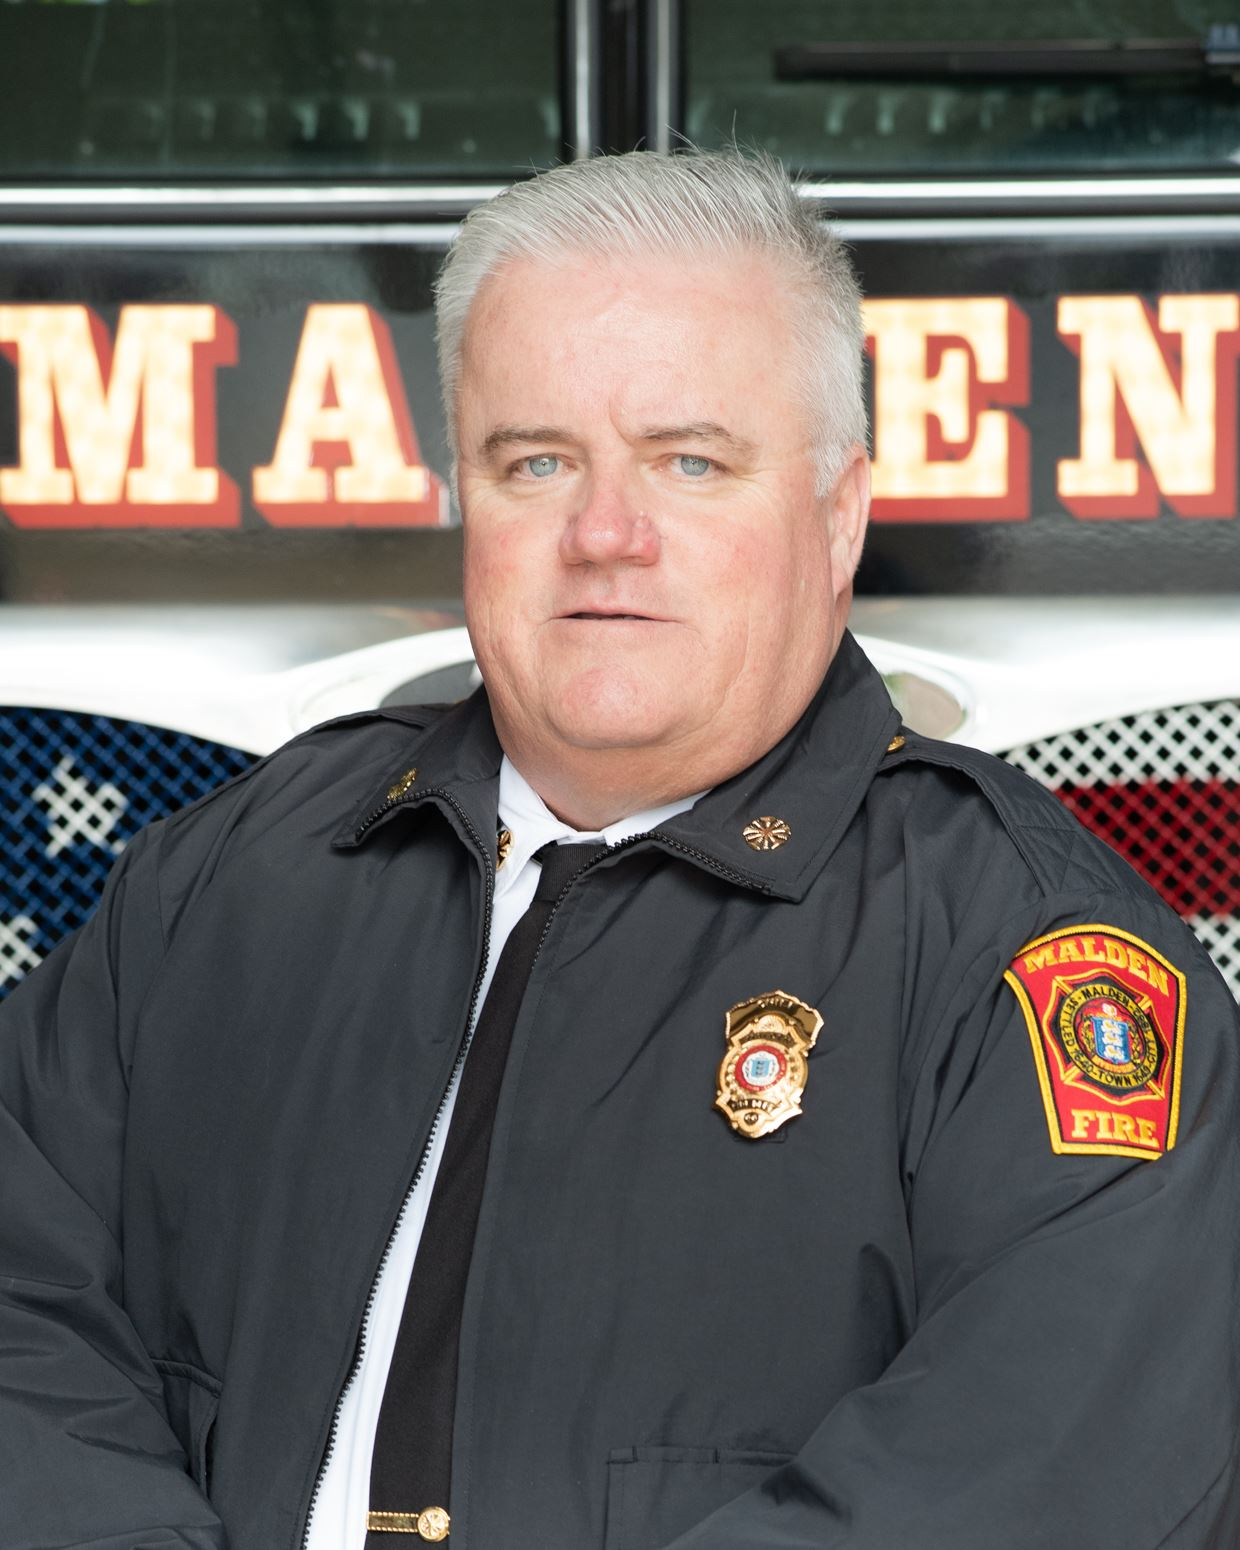 Malden Fire Chief Bill Sullivan